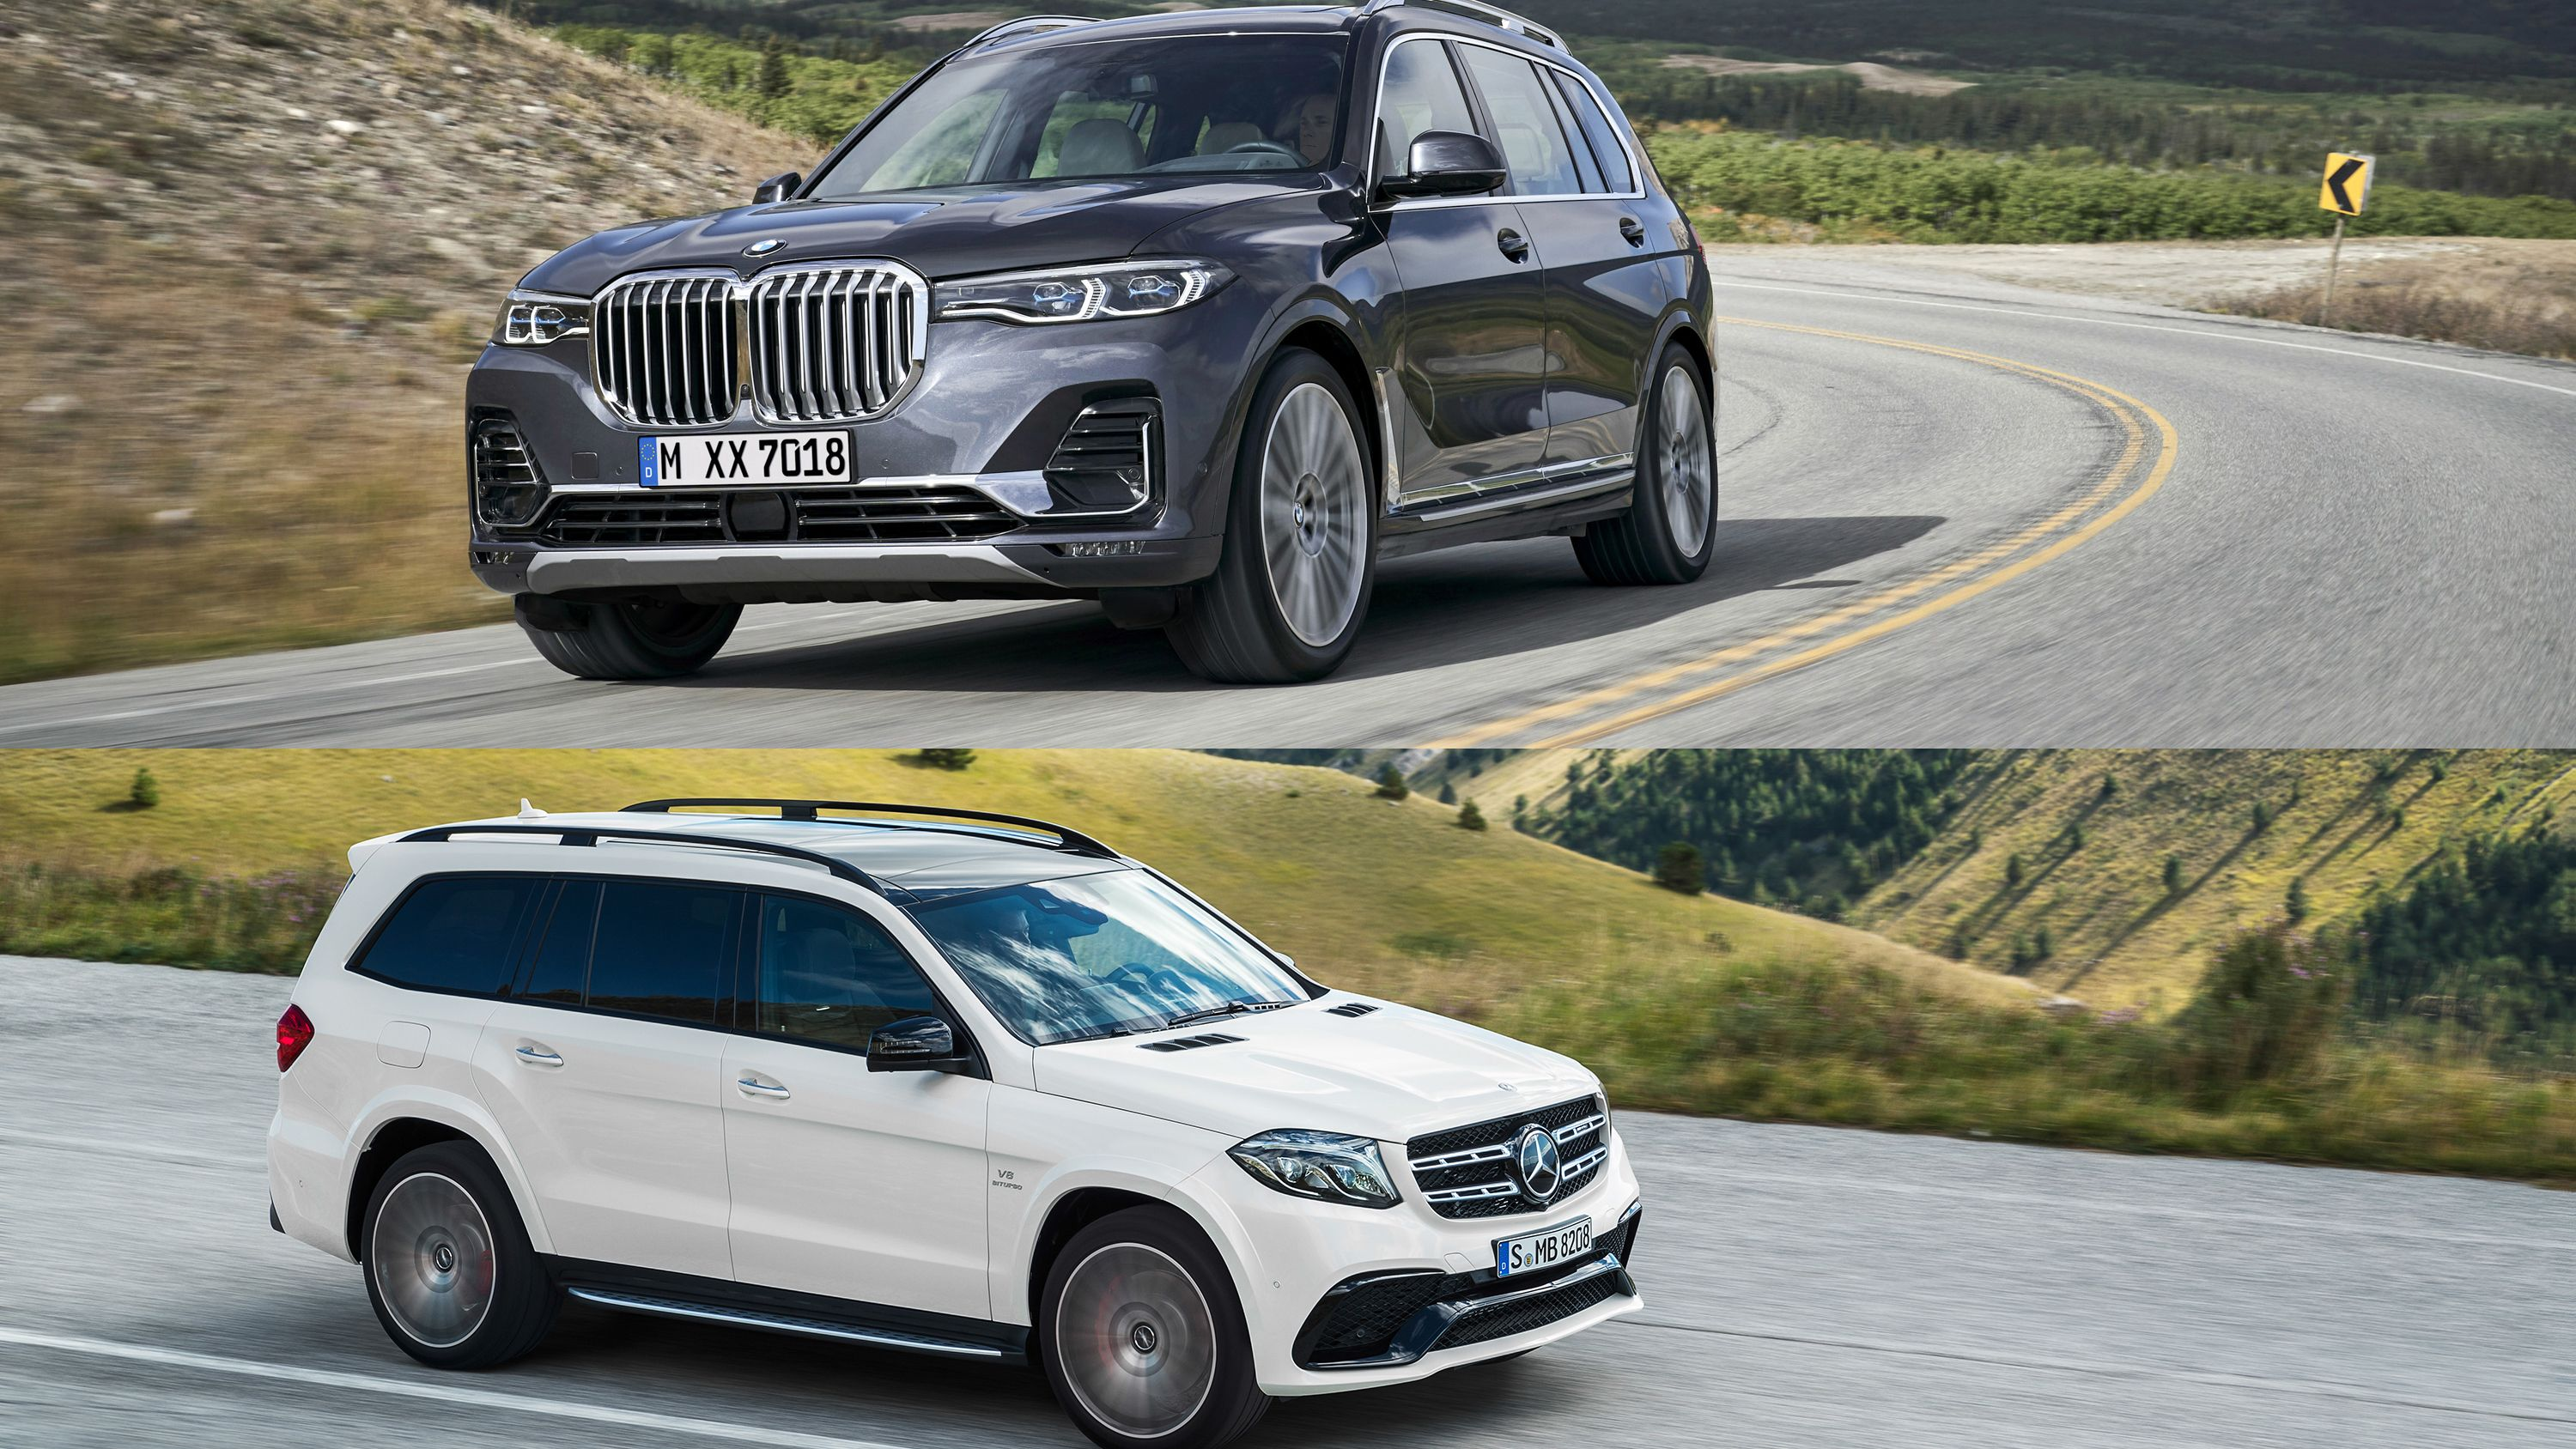 2020 Mercedes Gls New Photographs Of Full Measurement Suv Coming For Bmw X7 Bmw Coming Fullsize Gls Mercedes Pho Mercedes Benz Suv Mercedes Suv Bmw X7